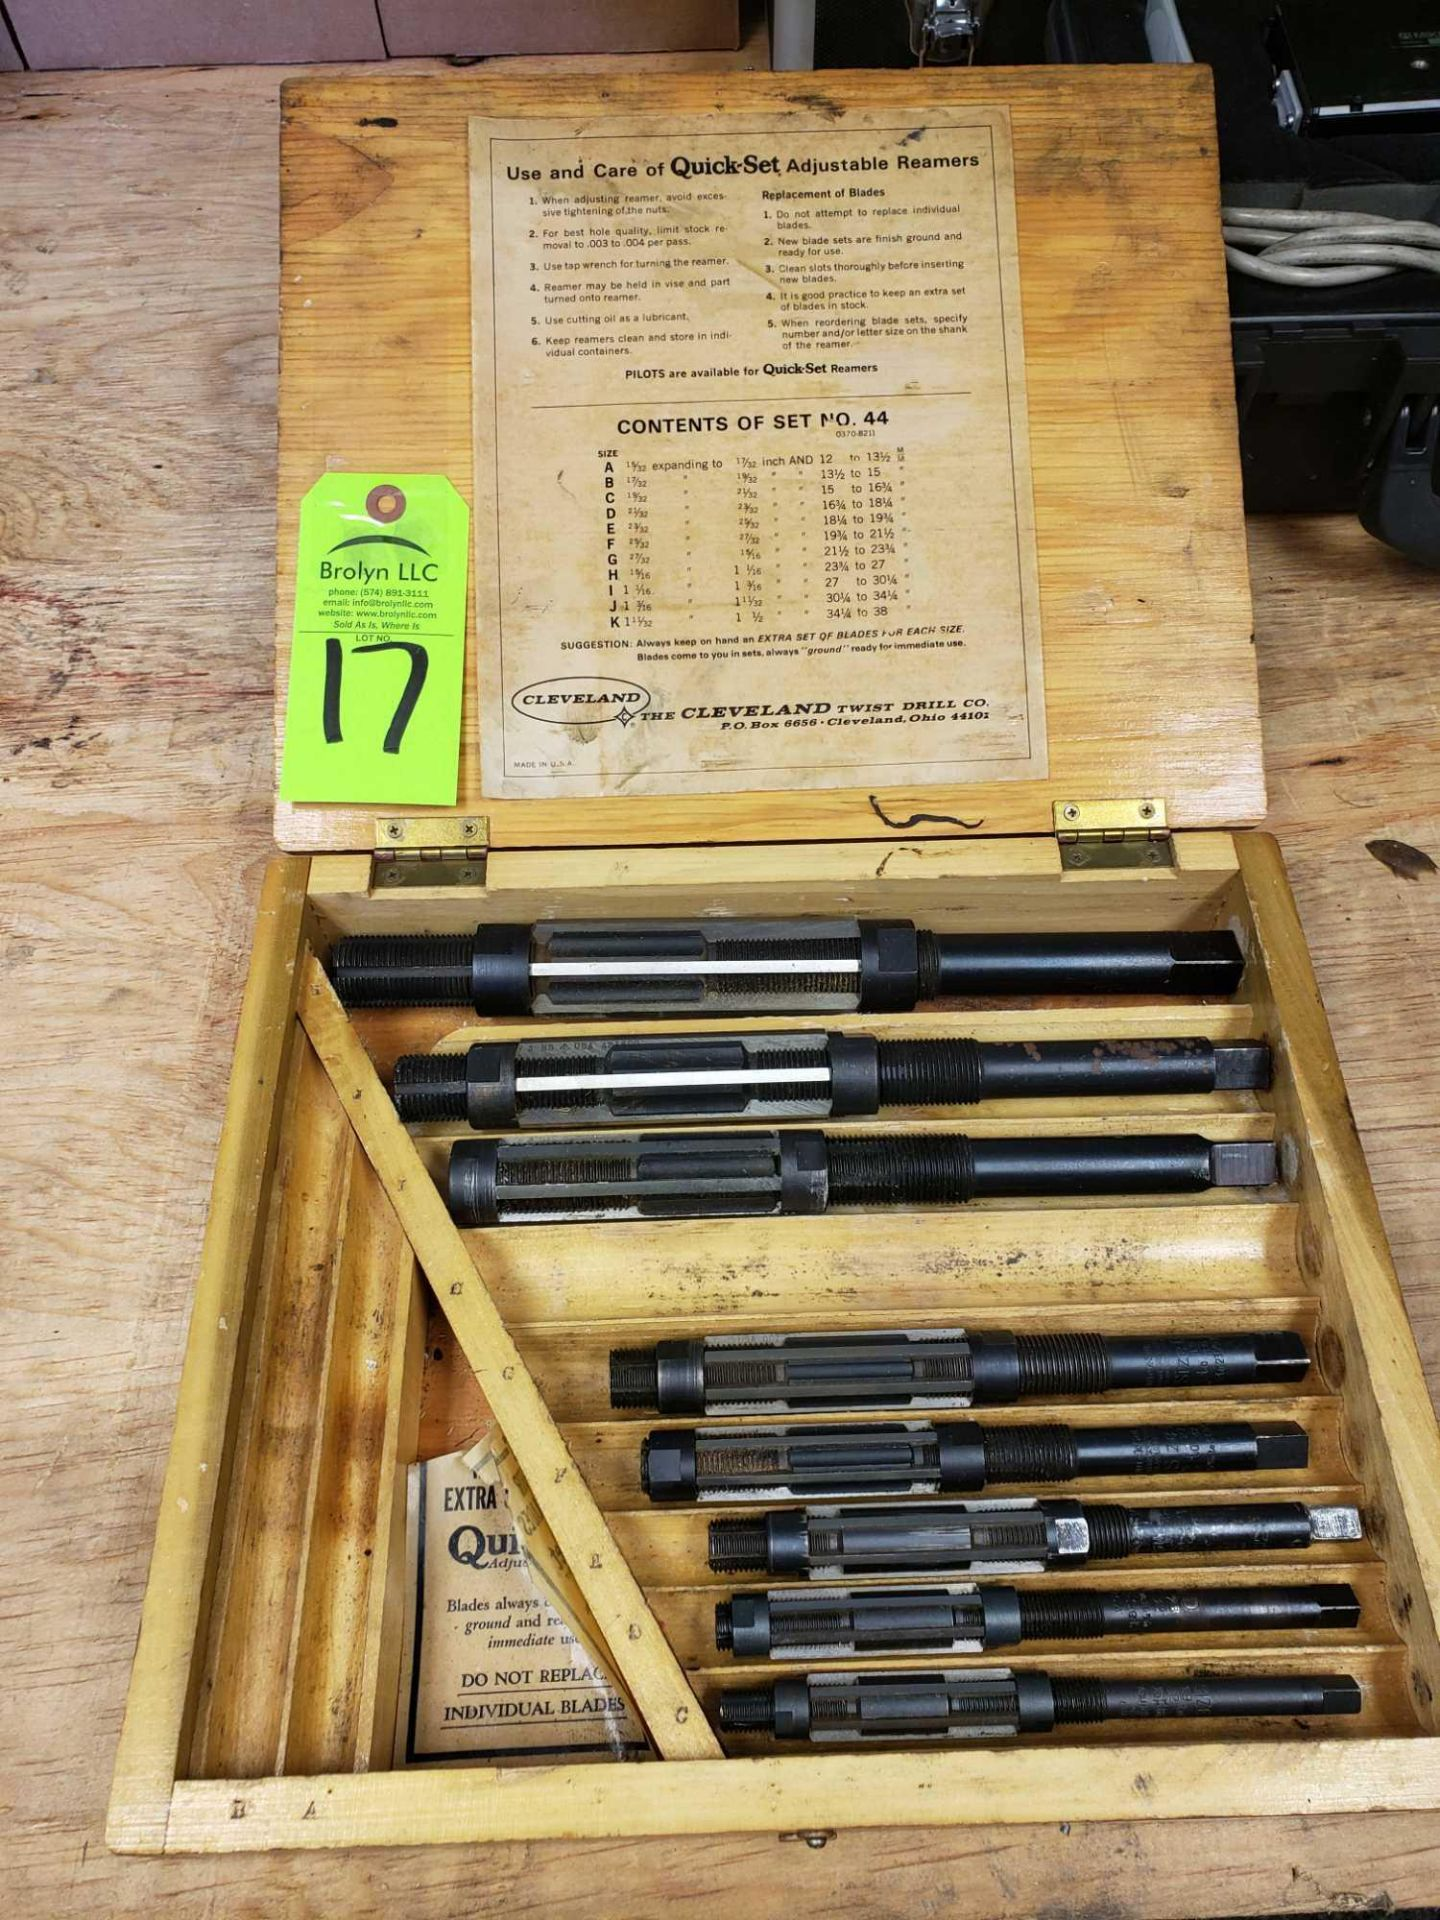 Lot 17 - Cleveland Reamer set as pictured